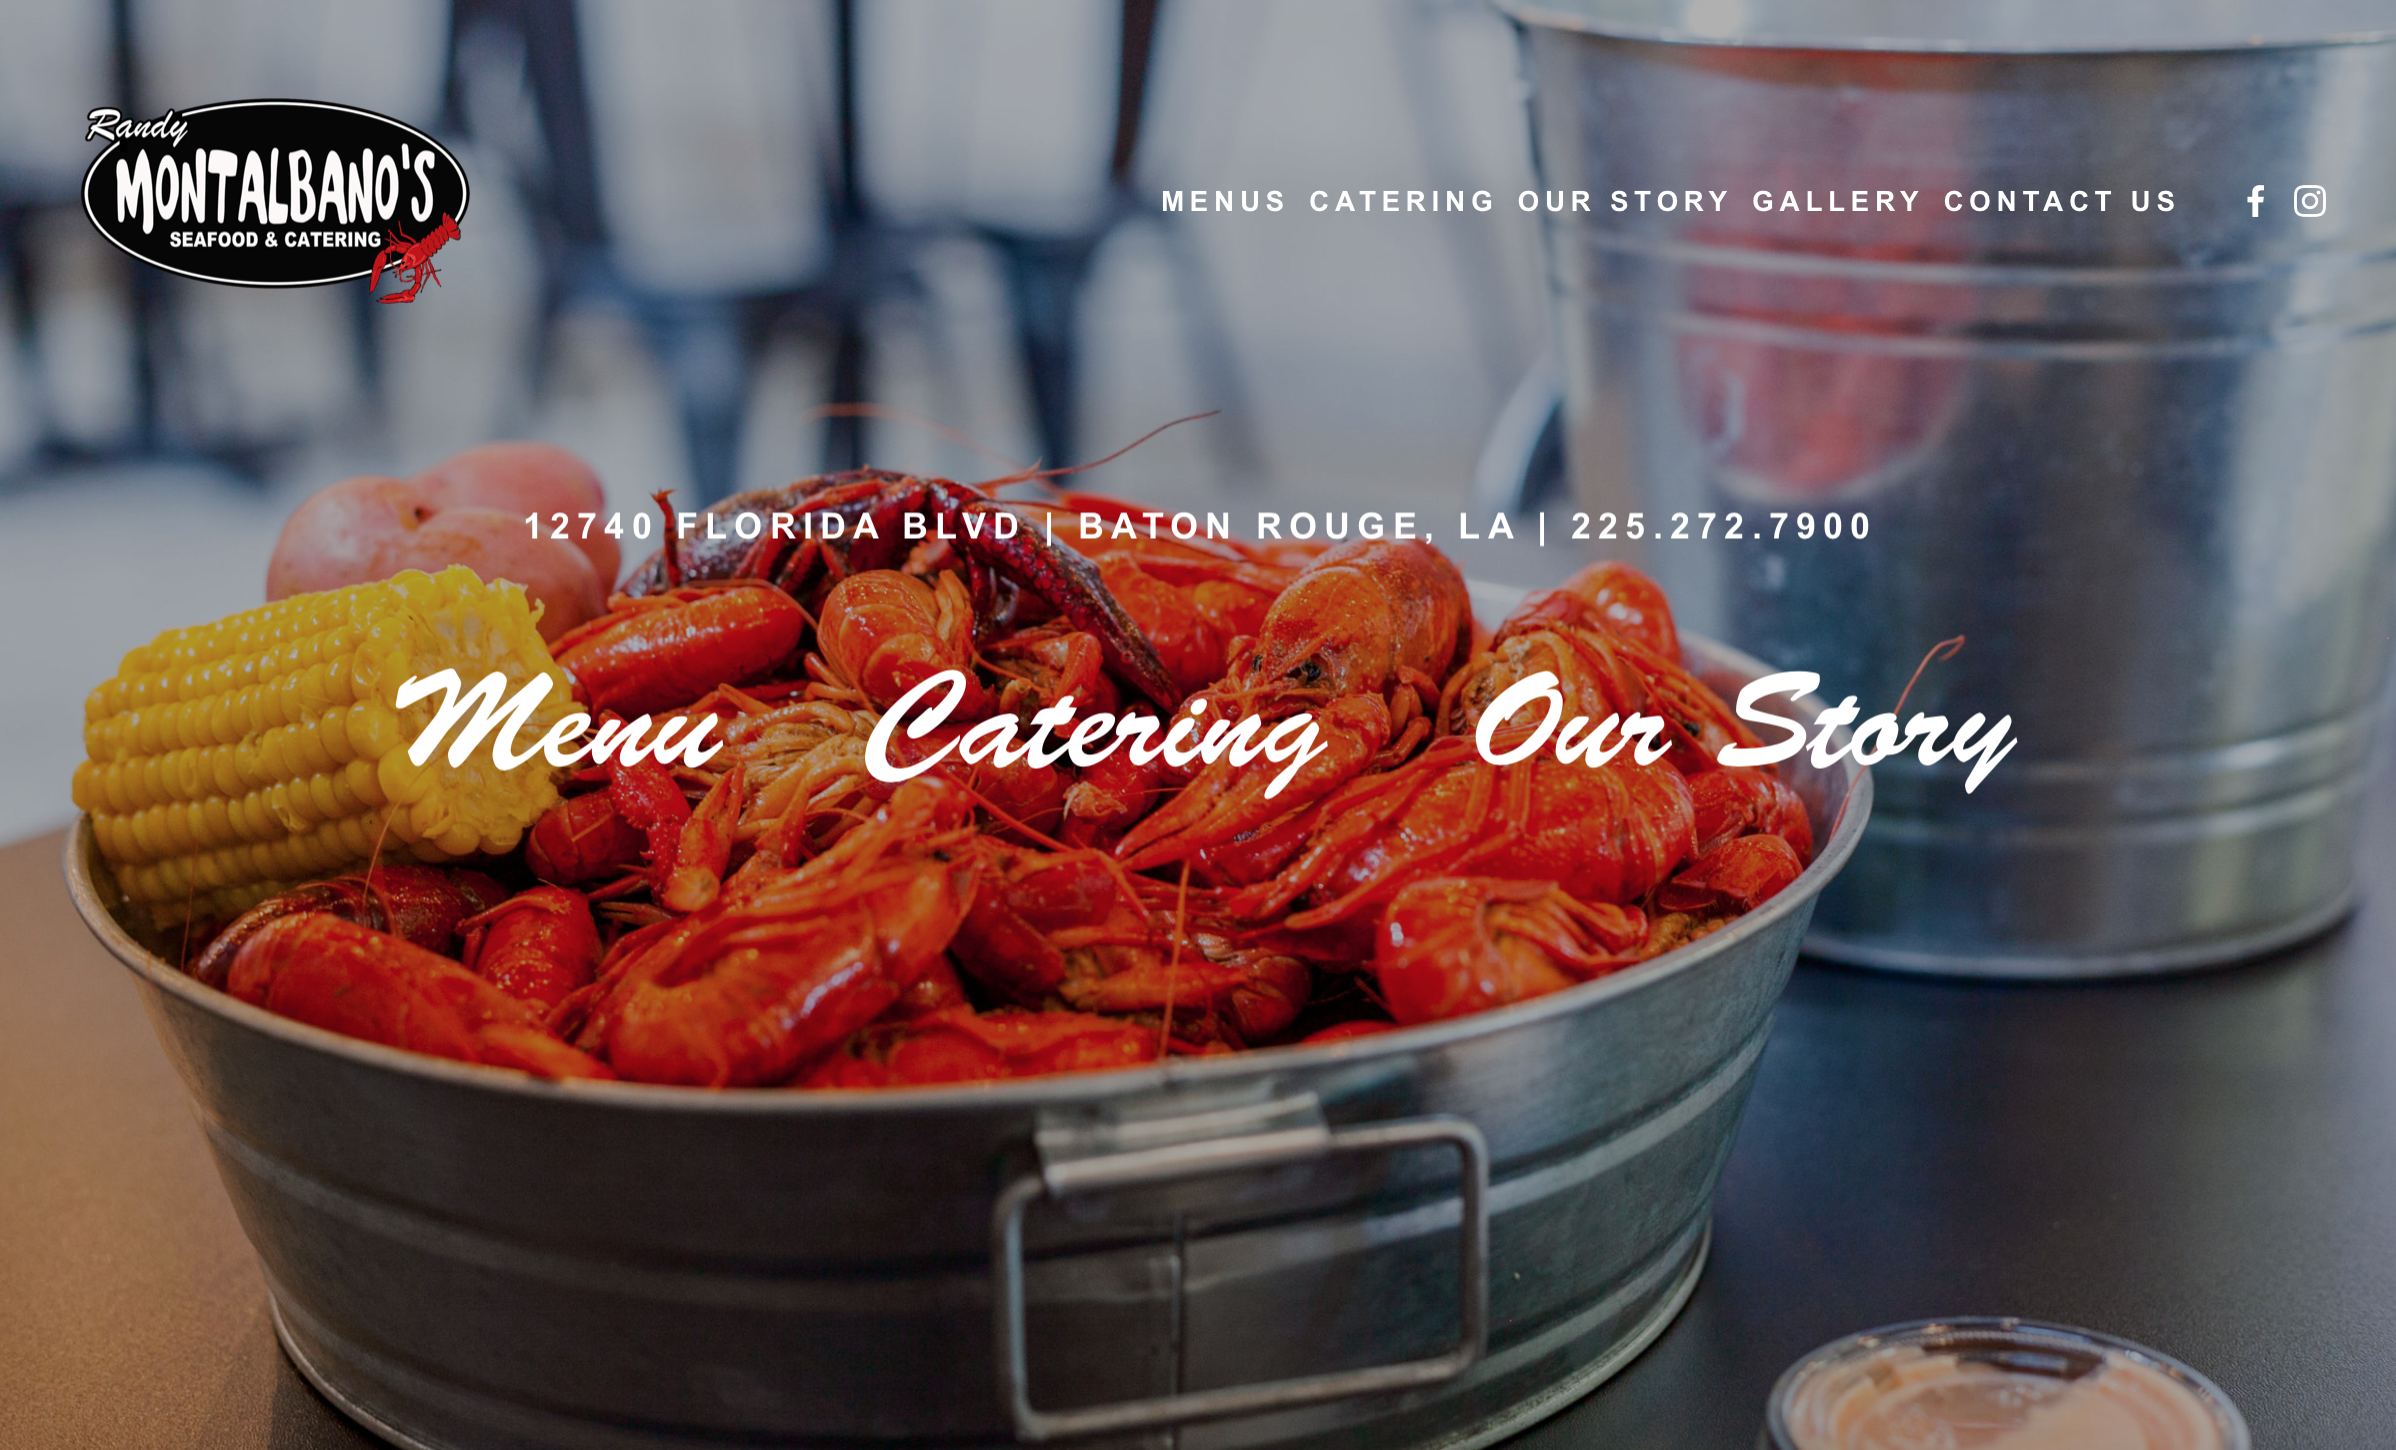 New Web Design for Montalbano's Seafood & Catering